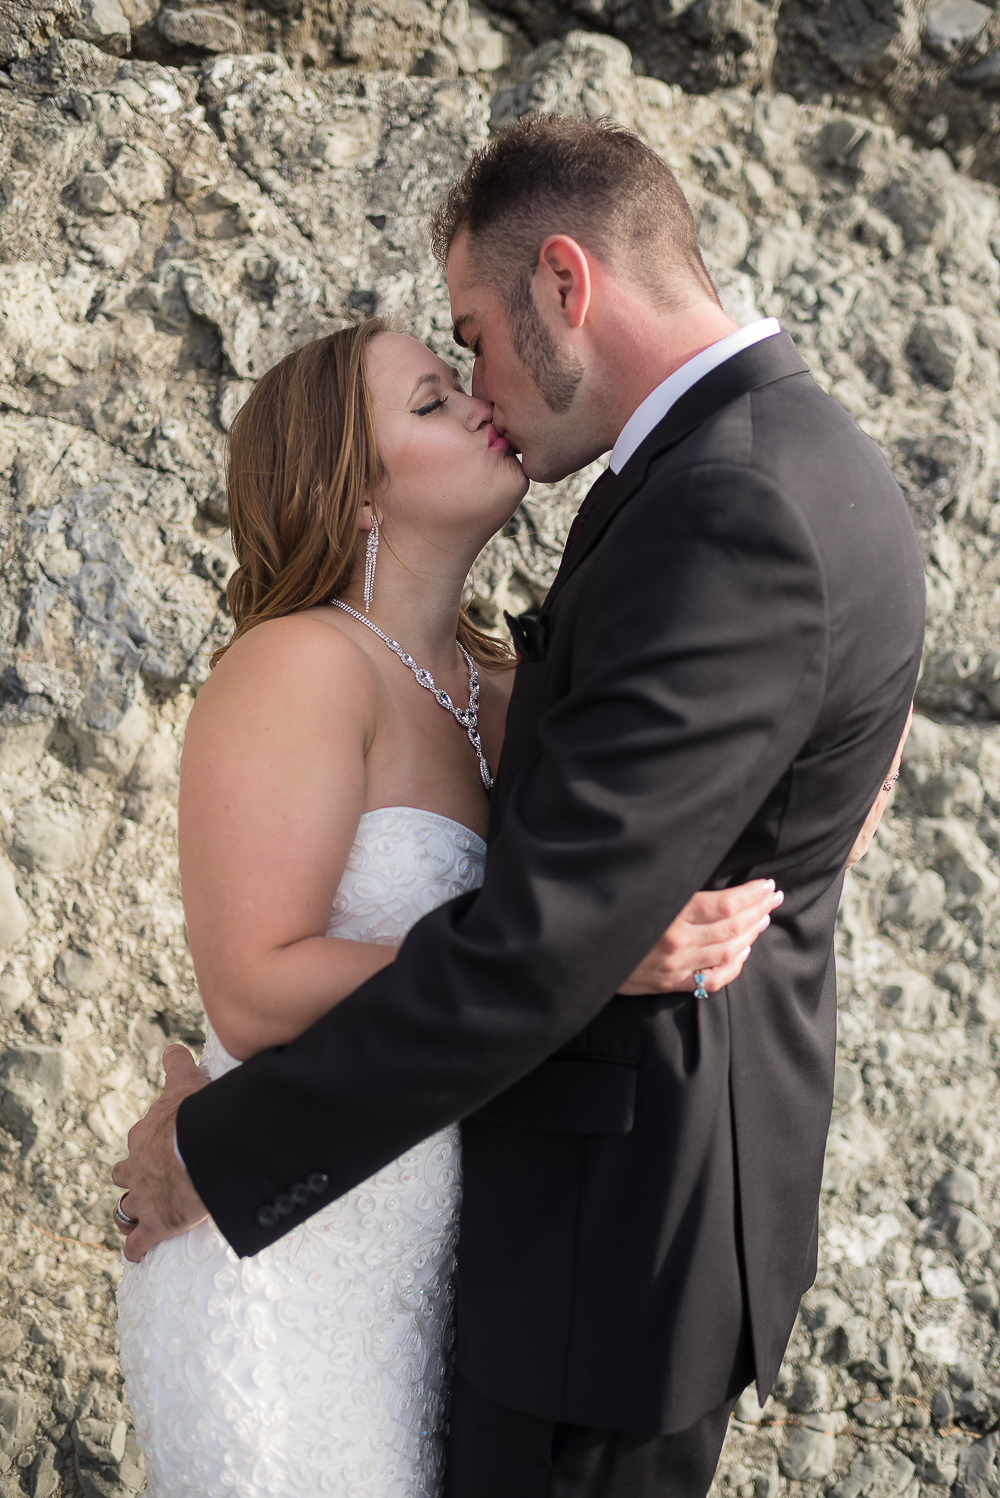 Shelter Cove-Intimate Destination beach Wedding-Parky's Pics Photography-Humboldt County_-47.jpg